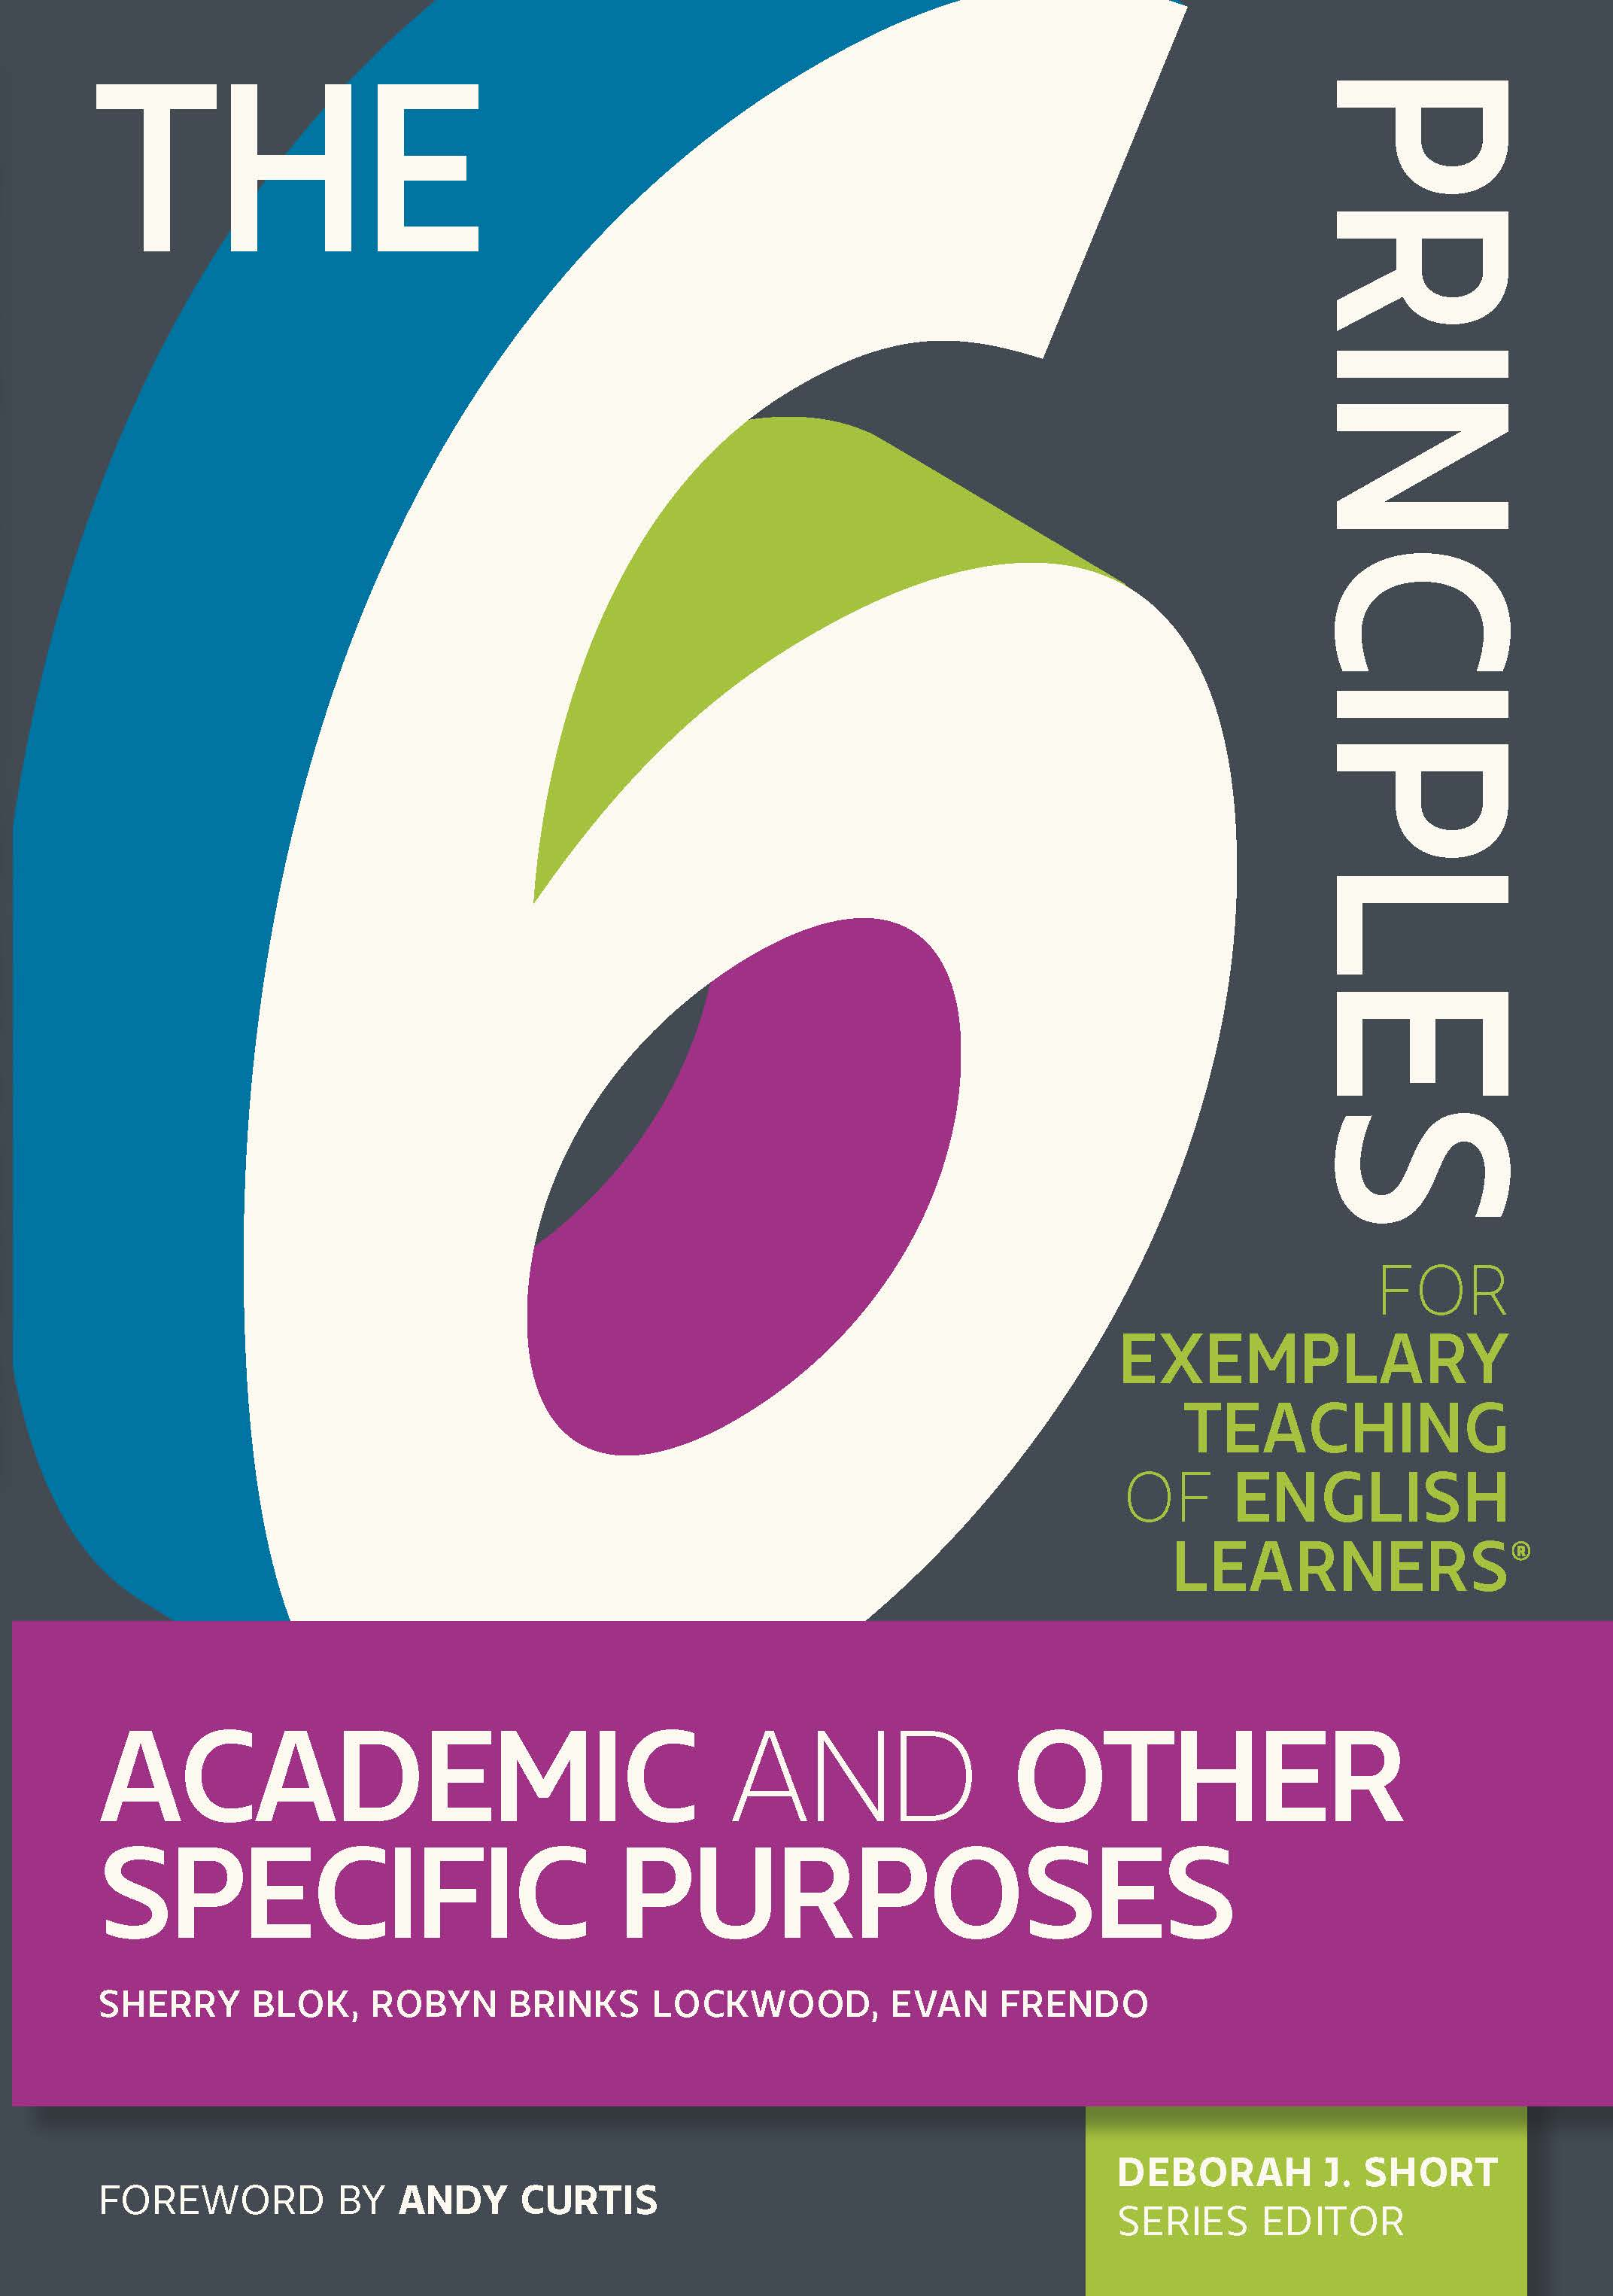 The 6 Ps: Academic and Specific Purposes by Sherry Blok, Evan Frendo, Robyn Brinks Lockwood, Authors and Deborah J. Short, Series Editor